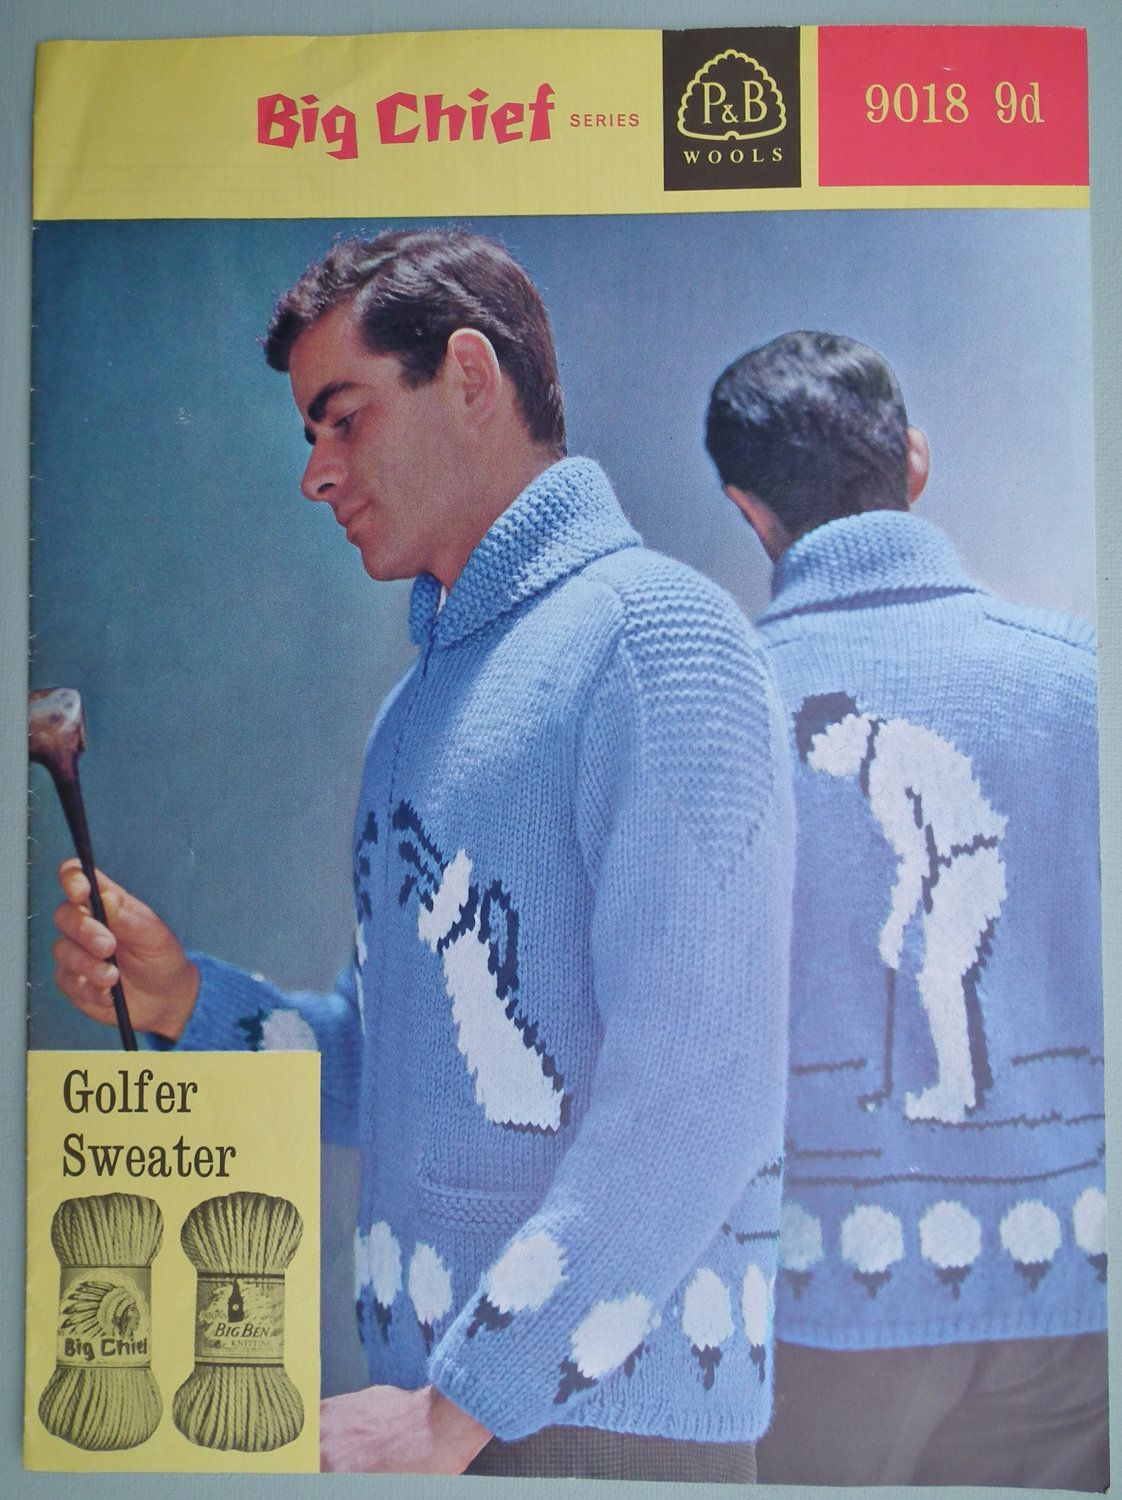 Vintage 1950s 1960s Knitting Pattern Mens Sweater With Golfing